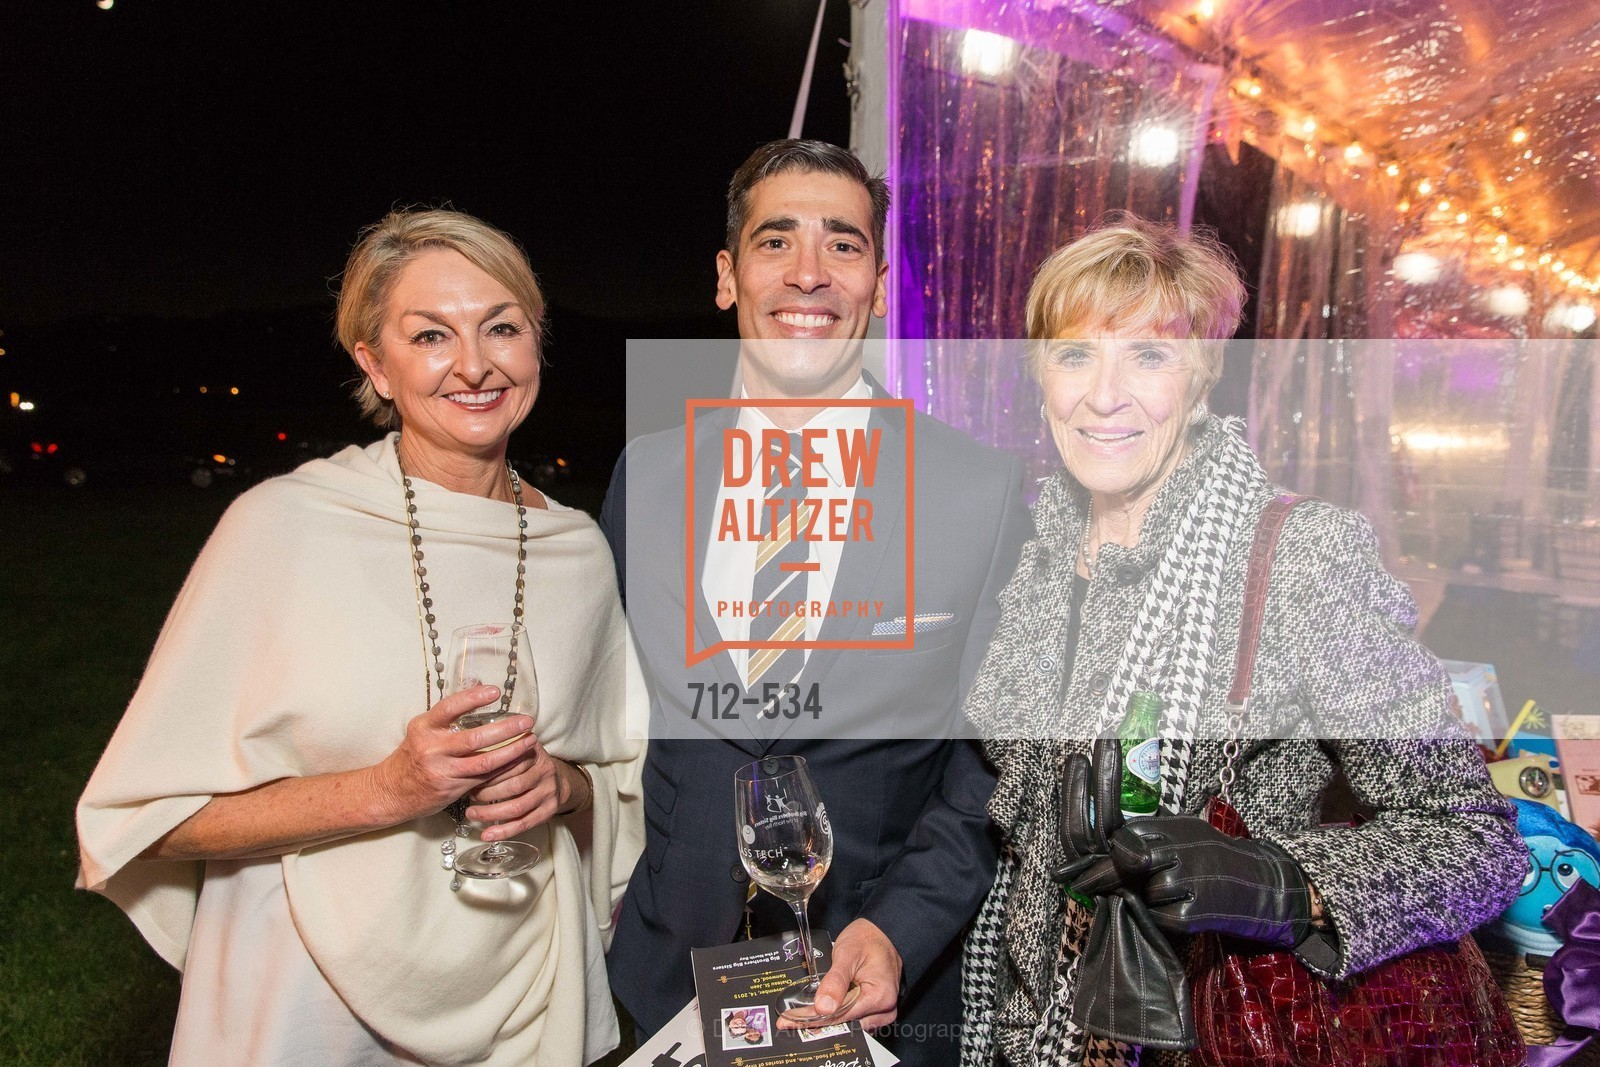 Debbie Calhoun, Bill Acevedo, Rev. Jan Heglund, Perfecting Pairings - Food, Wine and Stories, Chateau St Jean, Kenwood, November 14th, 2015,Drew Altizer, Drew Altizer Photography, full-service agency, private events, San Francisco photographer, photographer california